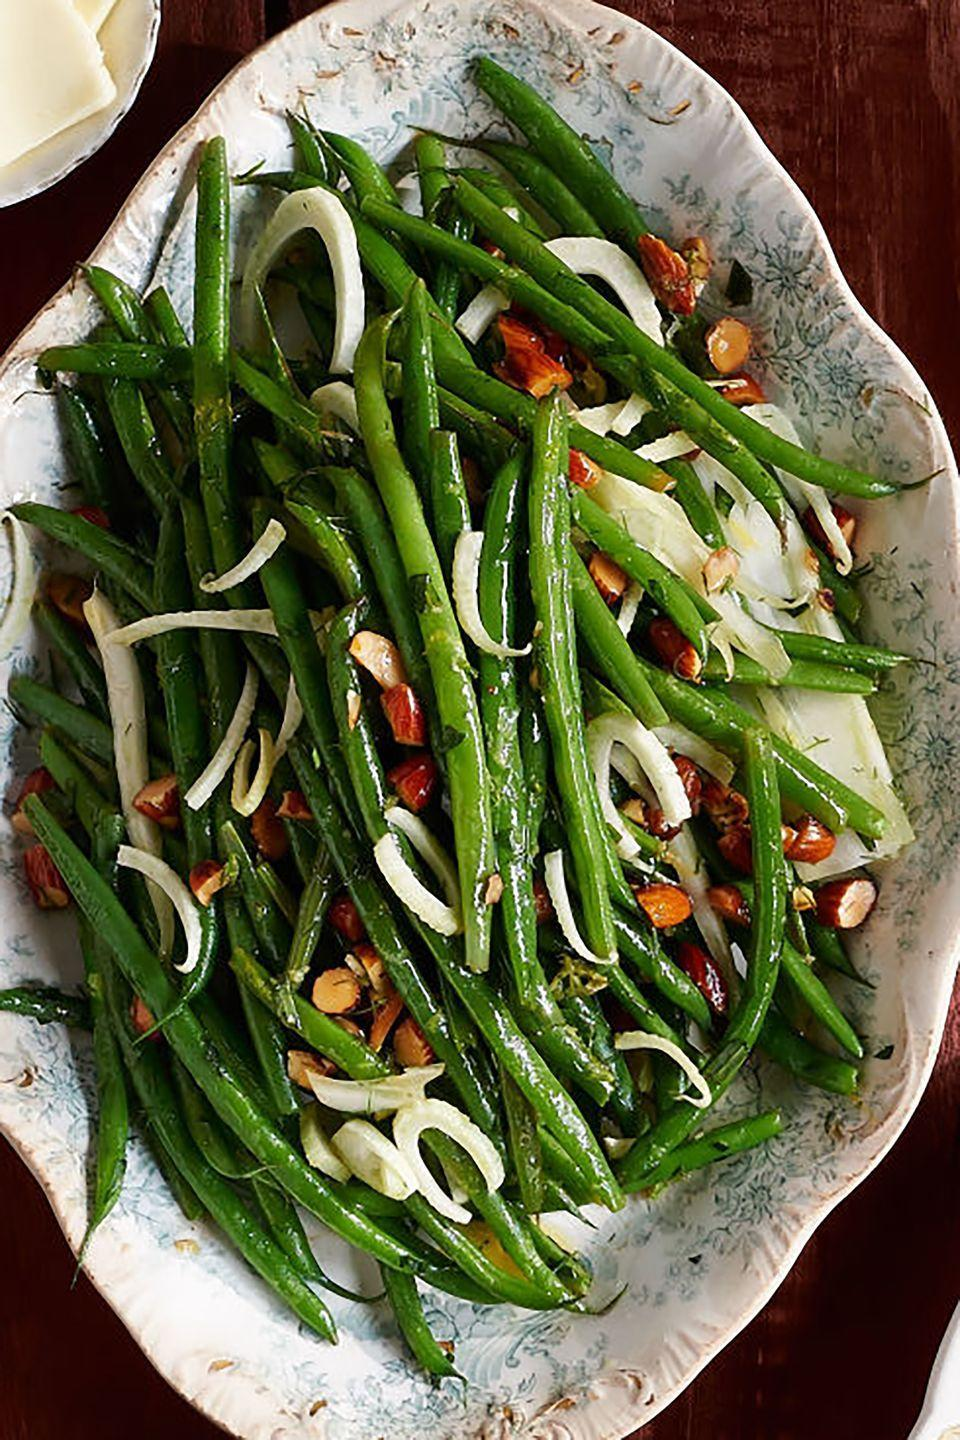 """<p>It's just a quick flash in the pan for this zesty veggie side.</p><p><strong><a href=""""https://www.countryliving.com/food-drinks/recipes/a36670/green-beans-and-fennel-with-tarragon/"""" rel=""""nofollow noopener"""" target=""""_blank"""" data-ylk=""""slk:Get the recipe"""" class=""""link rapid-noclick-resp"""">Get the recipe</a>.</strong></p>"""